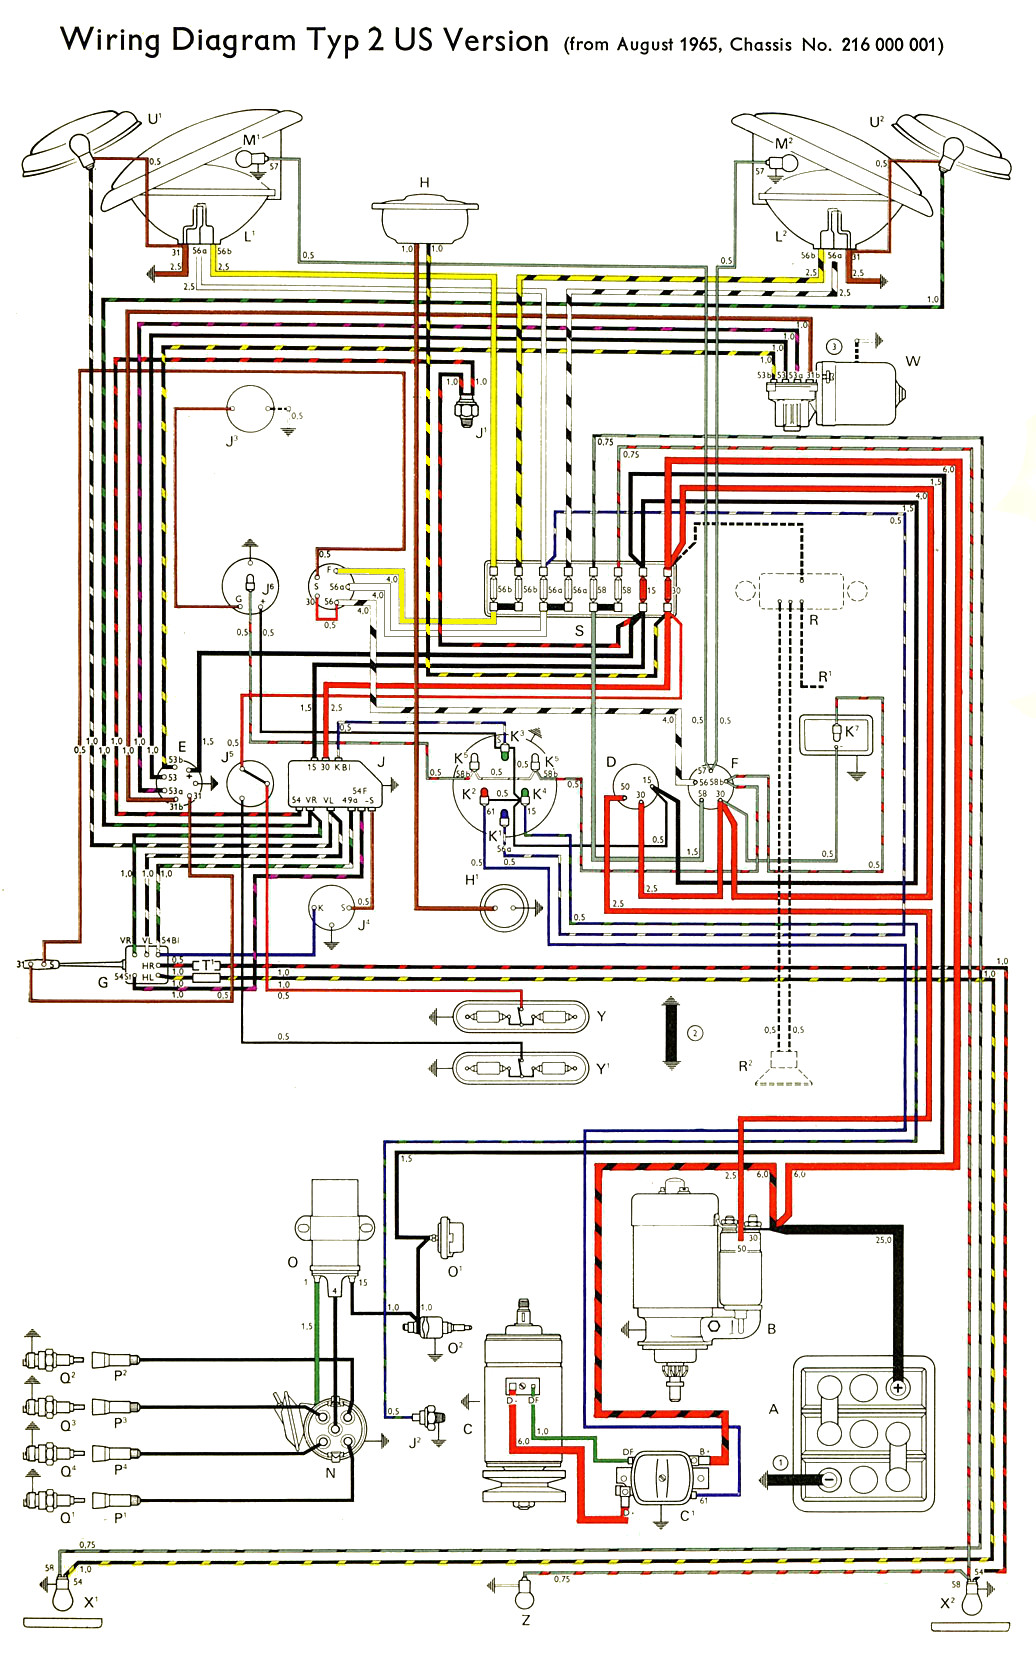 thesamba com type 2 wiring diagrams rh thesamba com Guitar Wiring Schematics HVAC Wiring Schematics